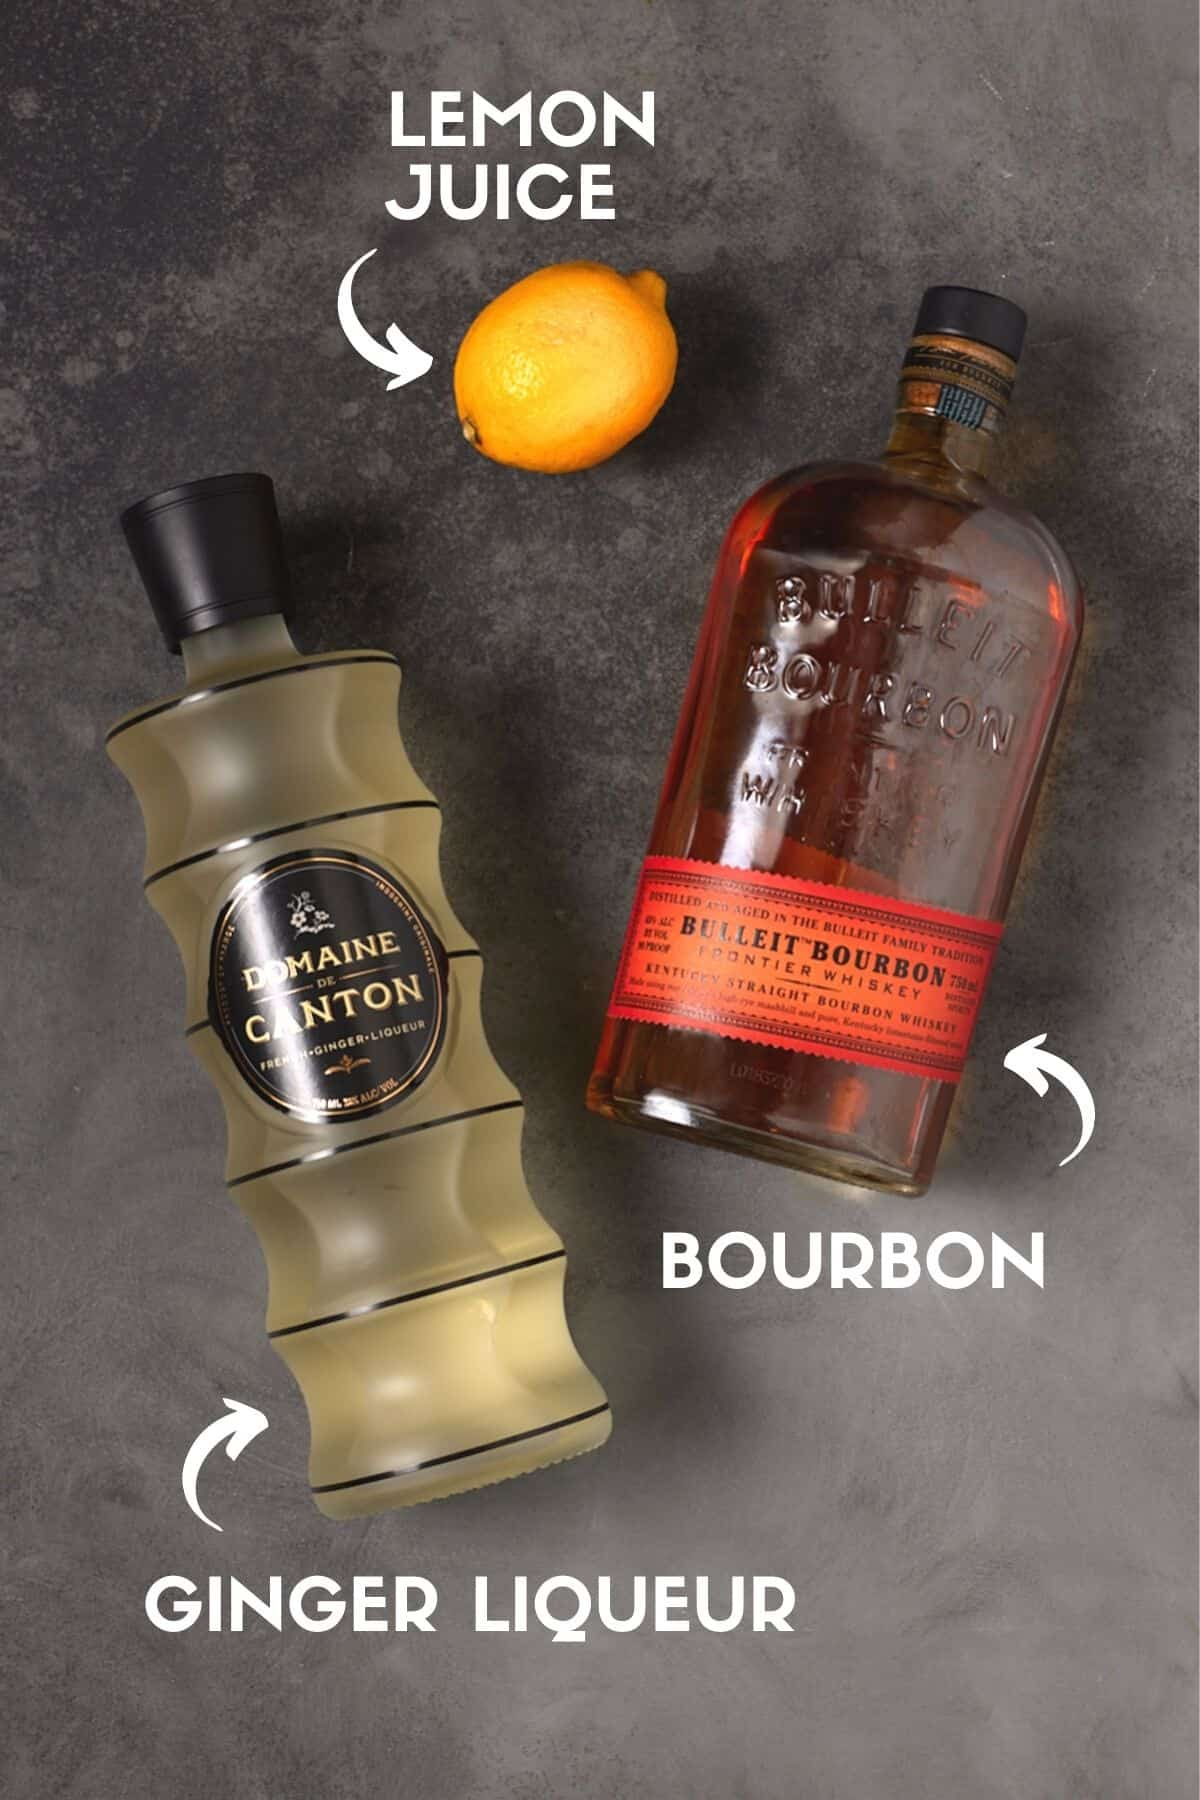 Bottles of bourbon and ginger liqueur with a lemon on a gray board.